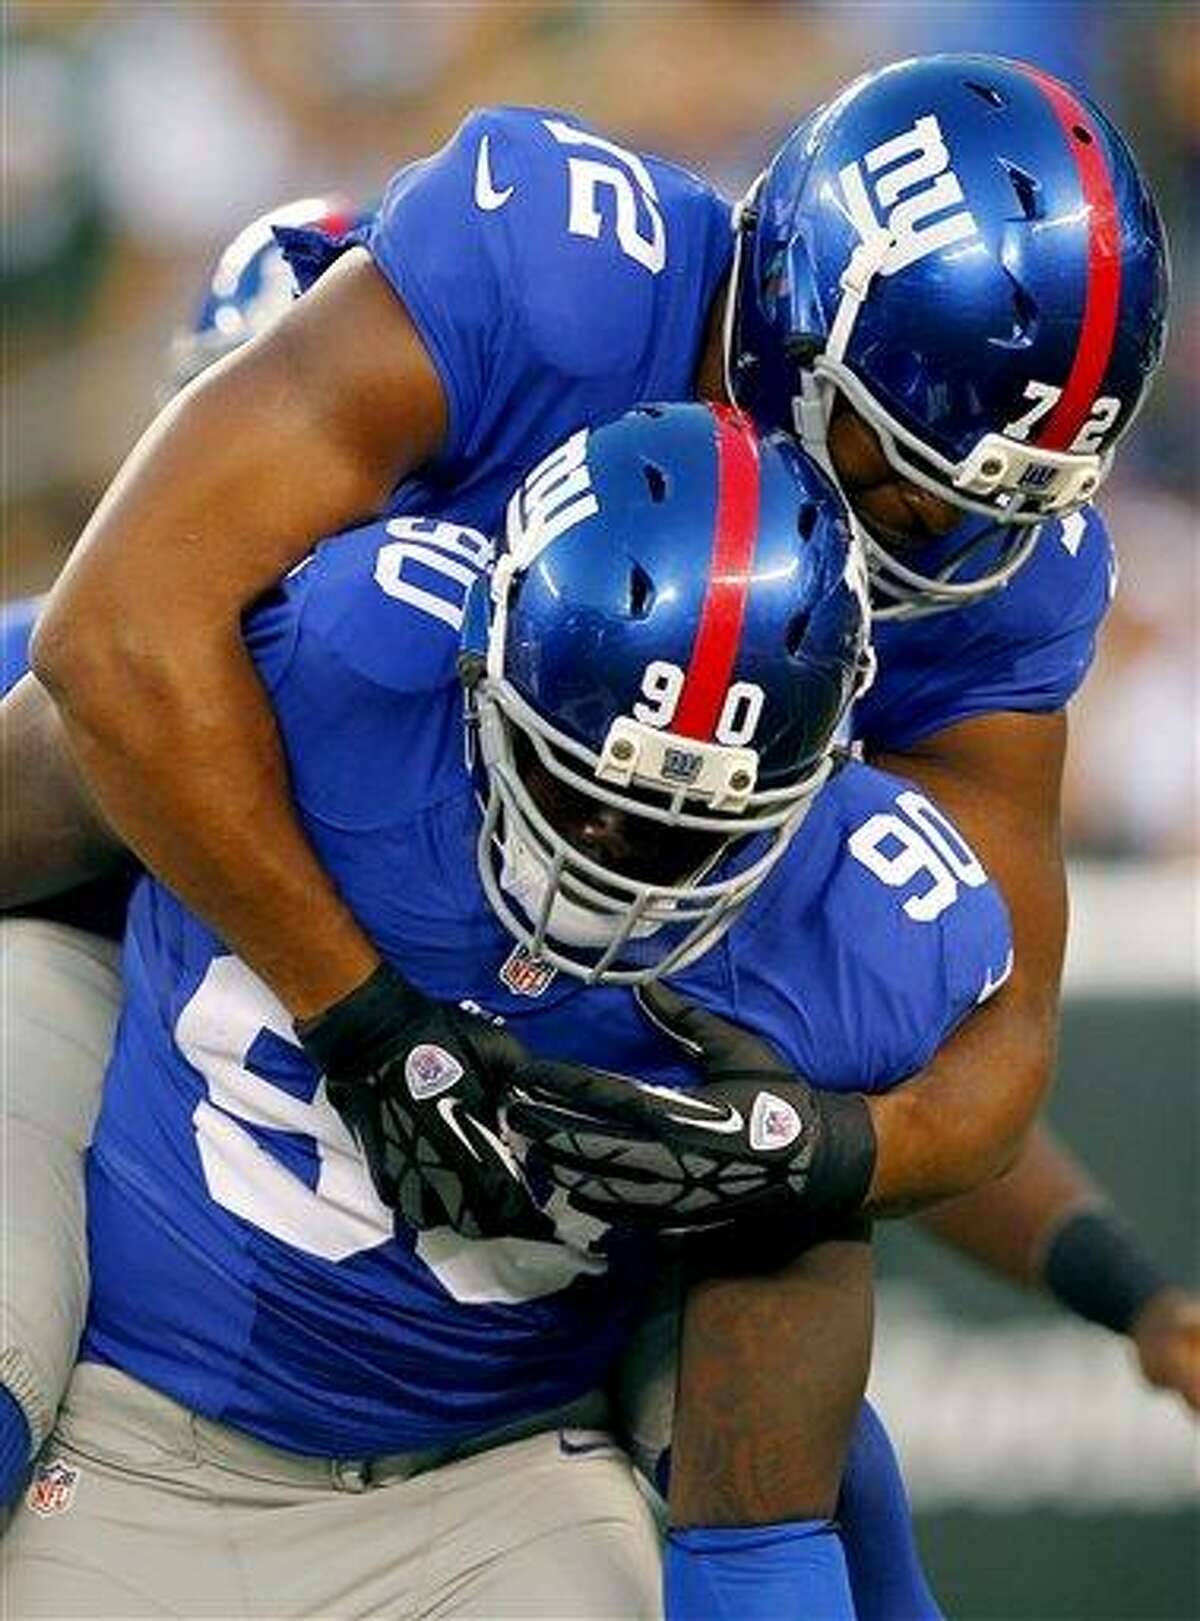 FILE - In this Aug. 18, 2012, file photo, New York Giants defensive end Jason Pierre-Paul (90) celebrates with Osi Umenyiora (72) after sacking New York Jets quarterback Mark Sanchez during the first half of a preseason NFL football game in East Rutherford, N.J. Coughlin knows the Giants can't afford another 9-7 regular season if they want to become the ninth team _ the Steelers did it twice _ to win consecutive titles. The Giants are scheduled to begin their season on Sept. 5 at home against the Dallas Cowboys. (AP Photo/Rich Schultz, File)